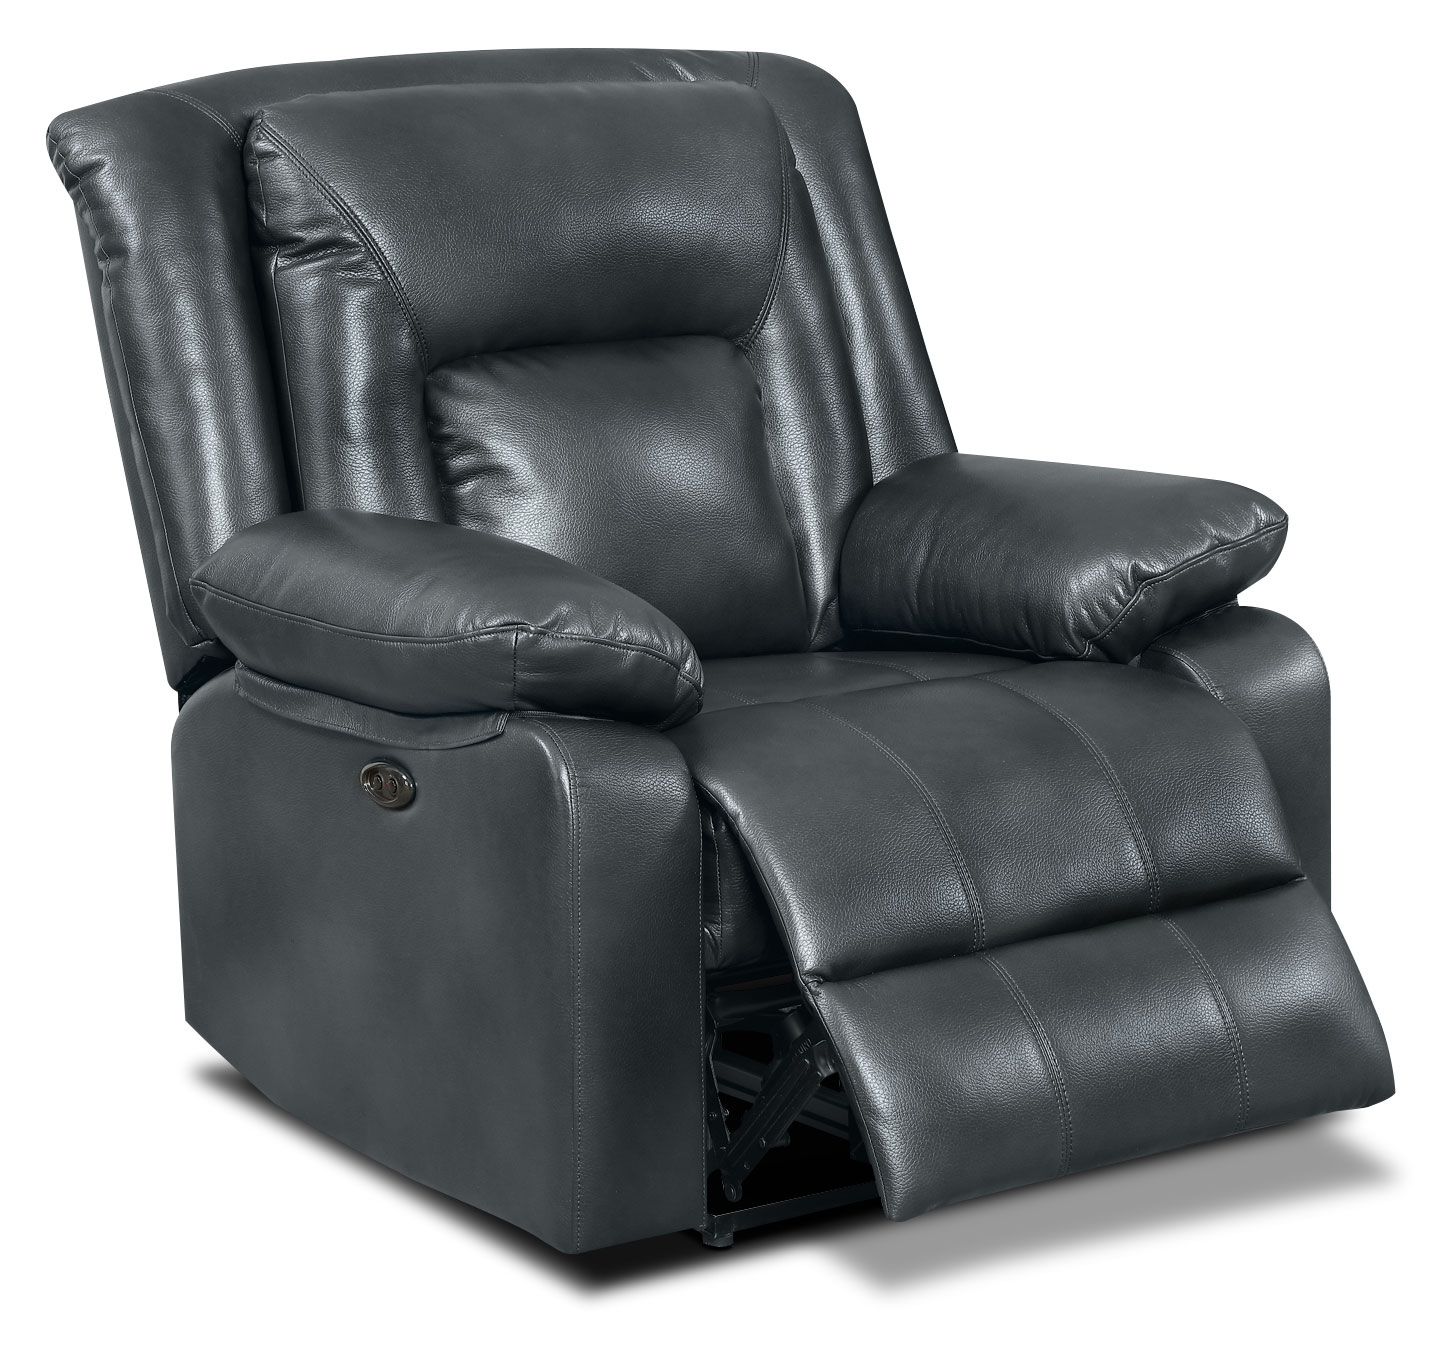 Blane Leather-Look Fabric Power Reclining Chair – Graphite